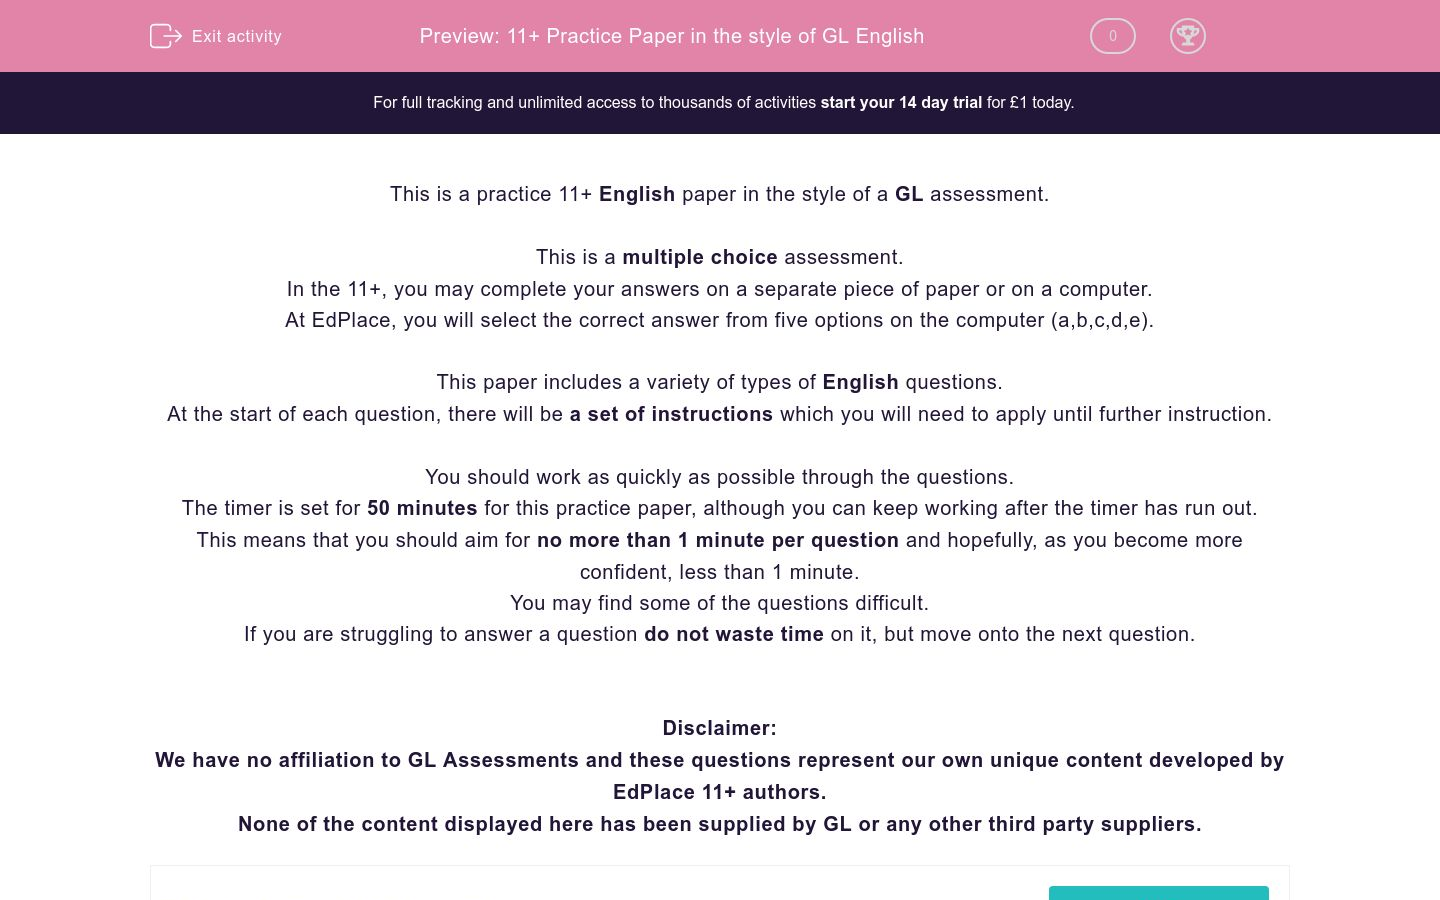 '11+ Practice Paper in the style of GL English ' worksheet